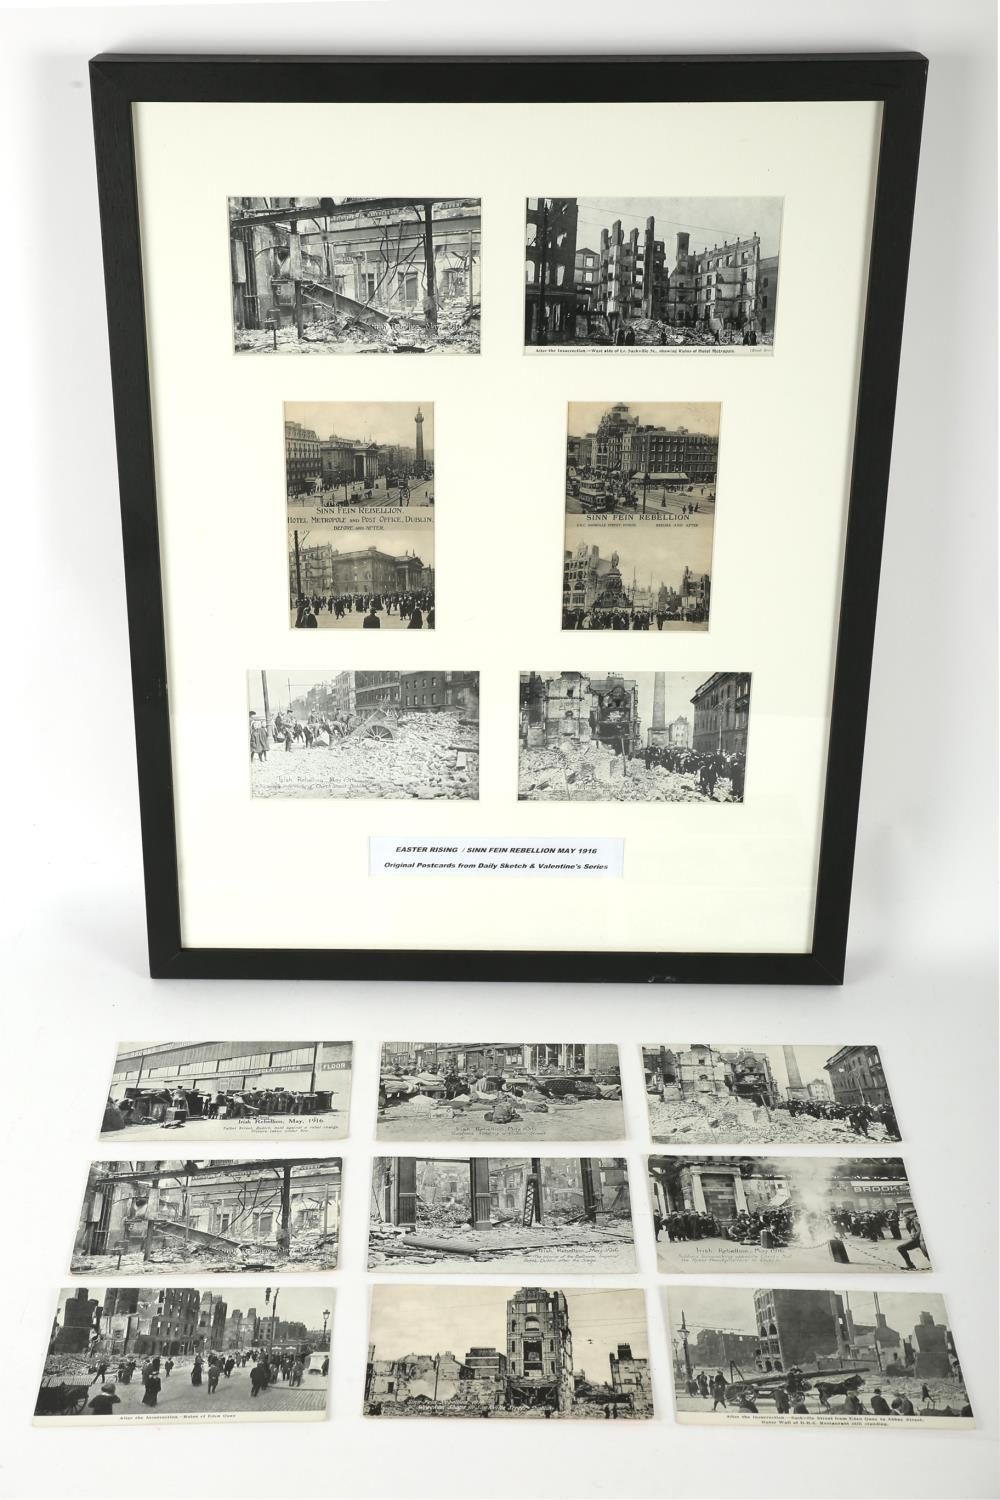 1916 Rising and aftermath. A collection of 15 1916 Rising postcards, including six attractively